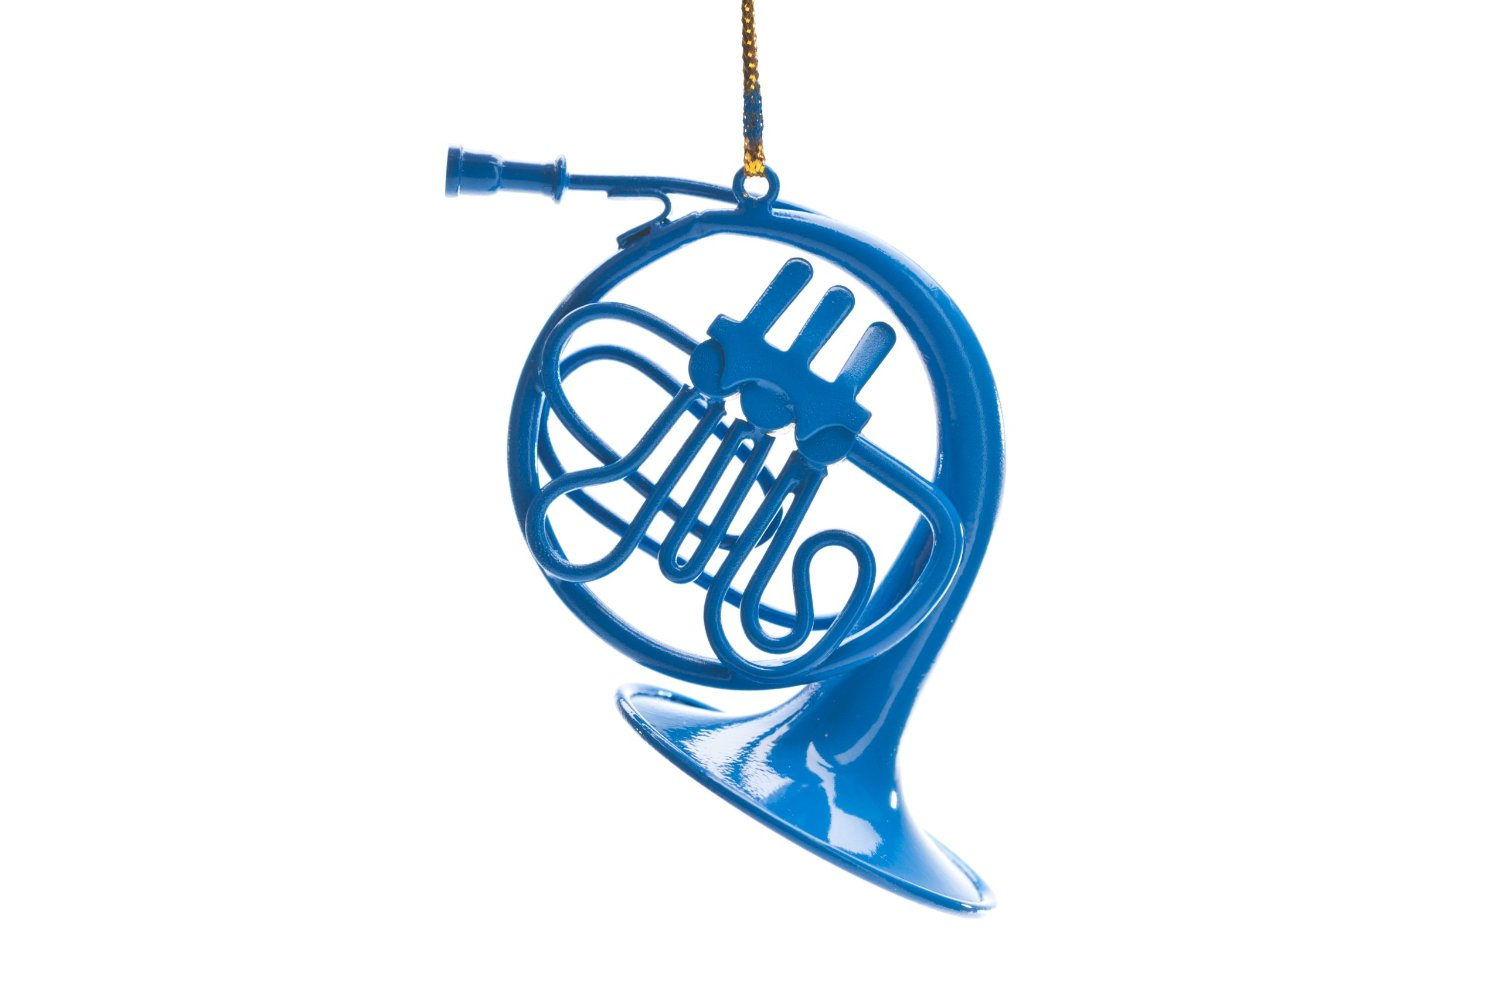 Blue French Horn Ornament – How I Met Your Mother